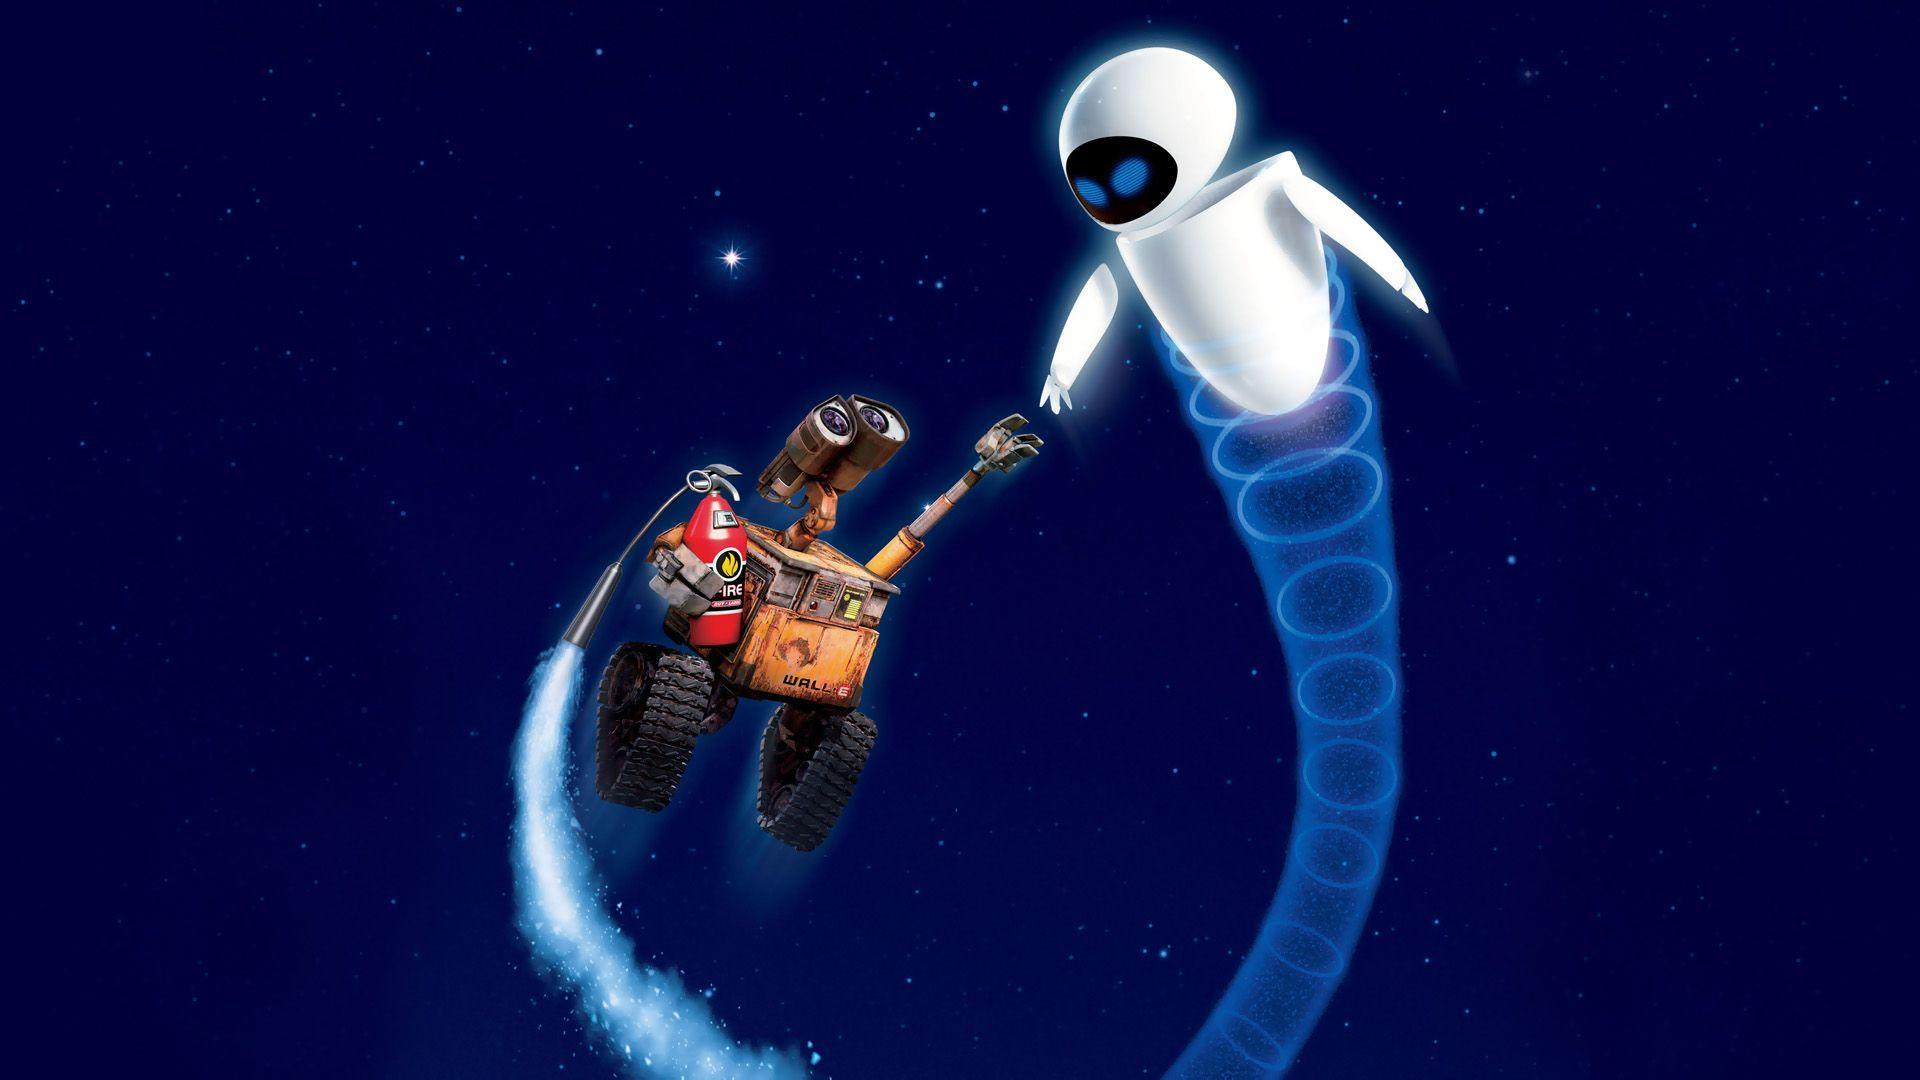 WALL-E Wallpapers - Fondo de pantalla Cave 72 Wall · E HD Wallpapers